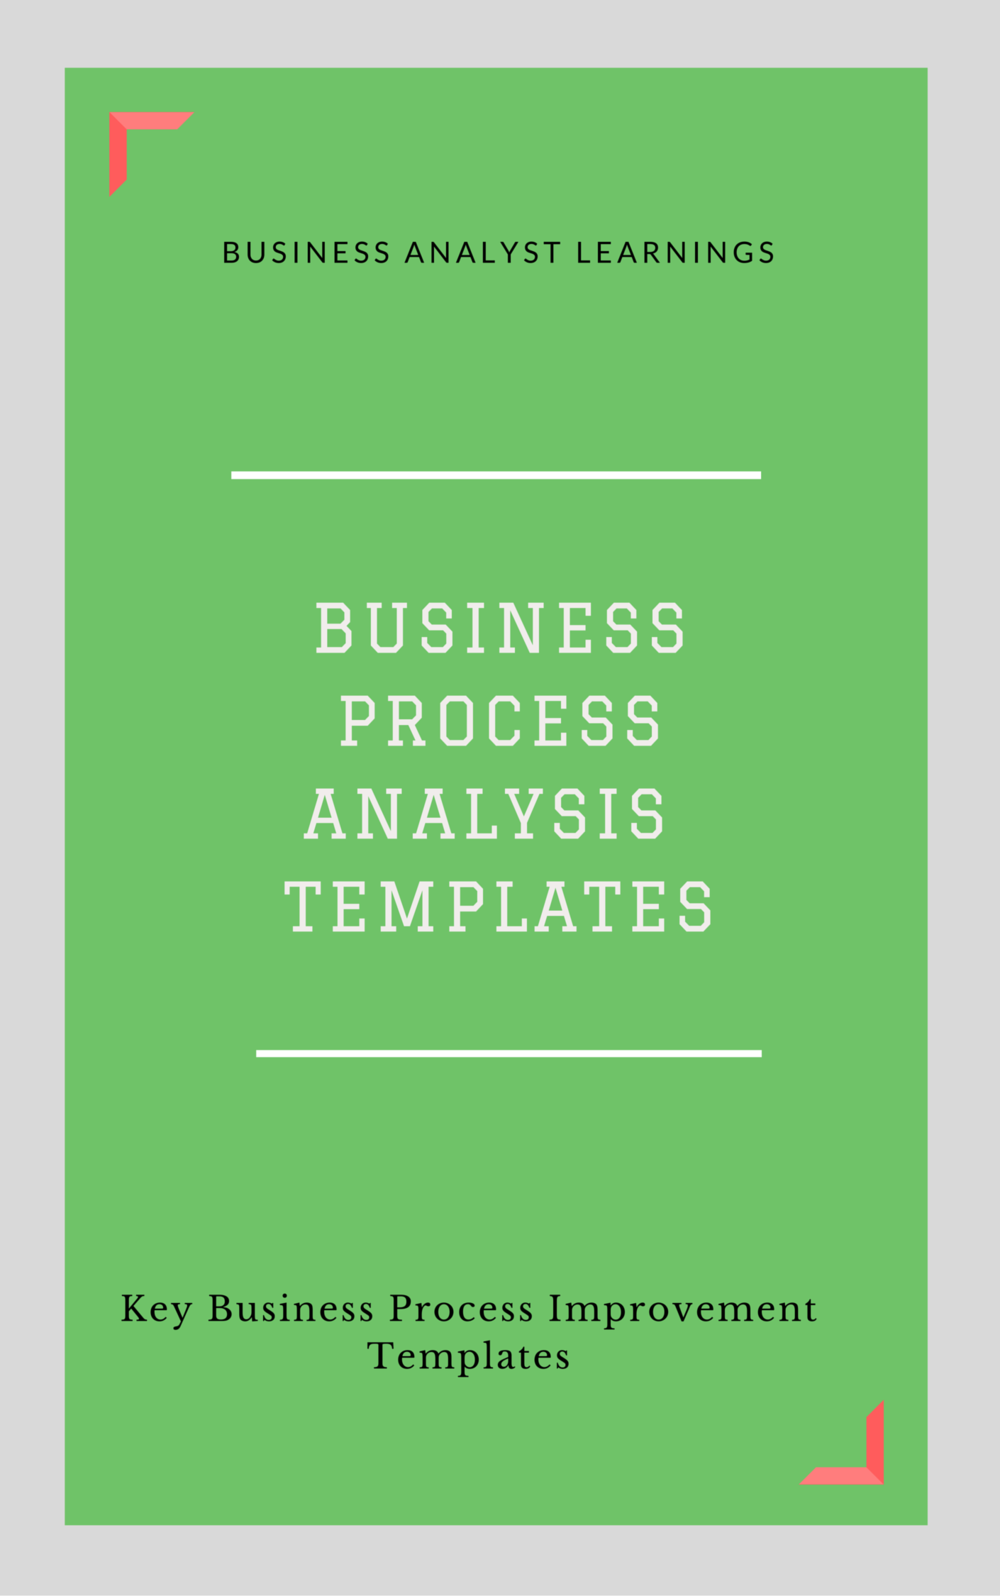 business process analysis template collection business analyst